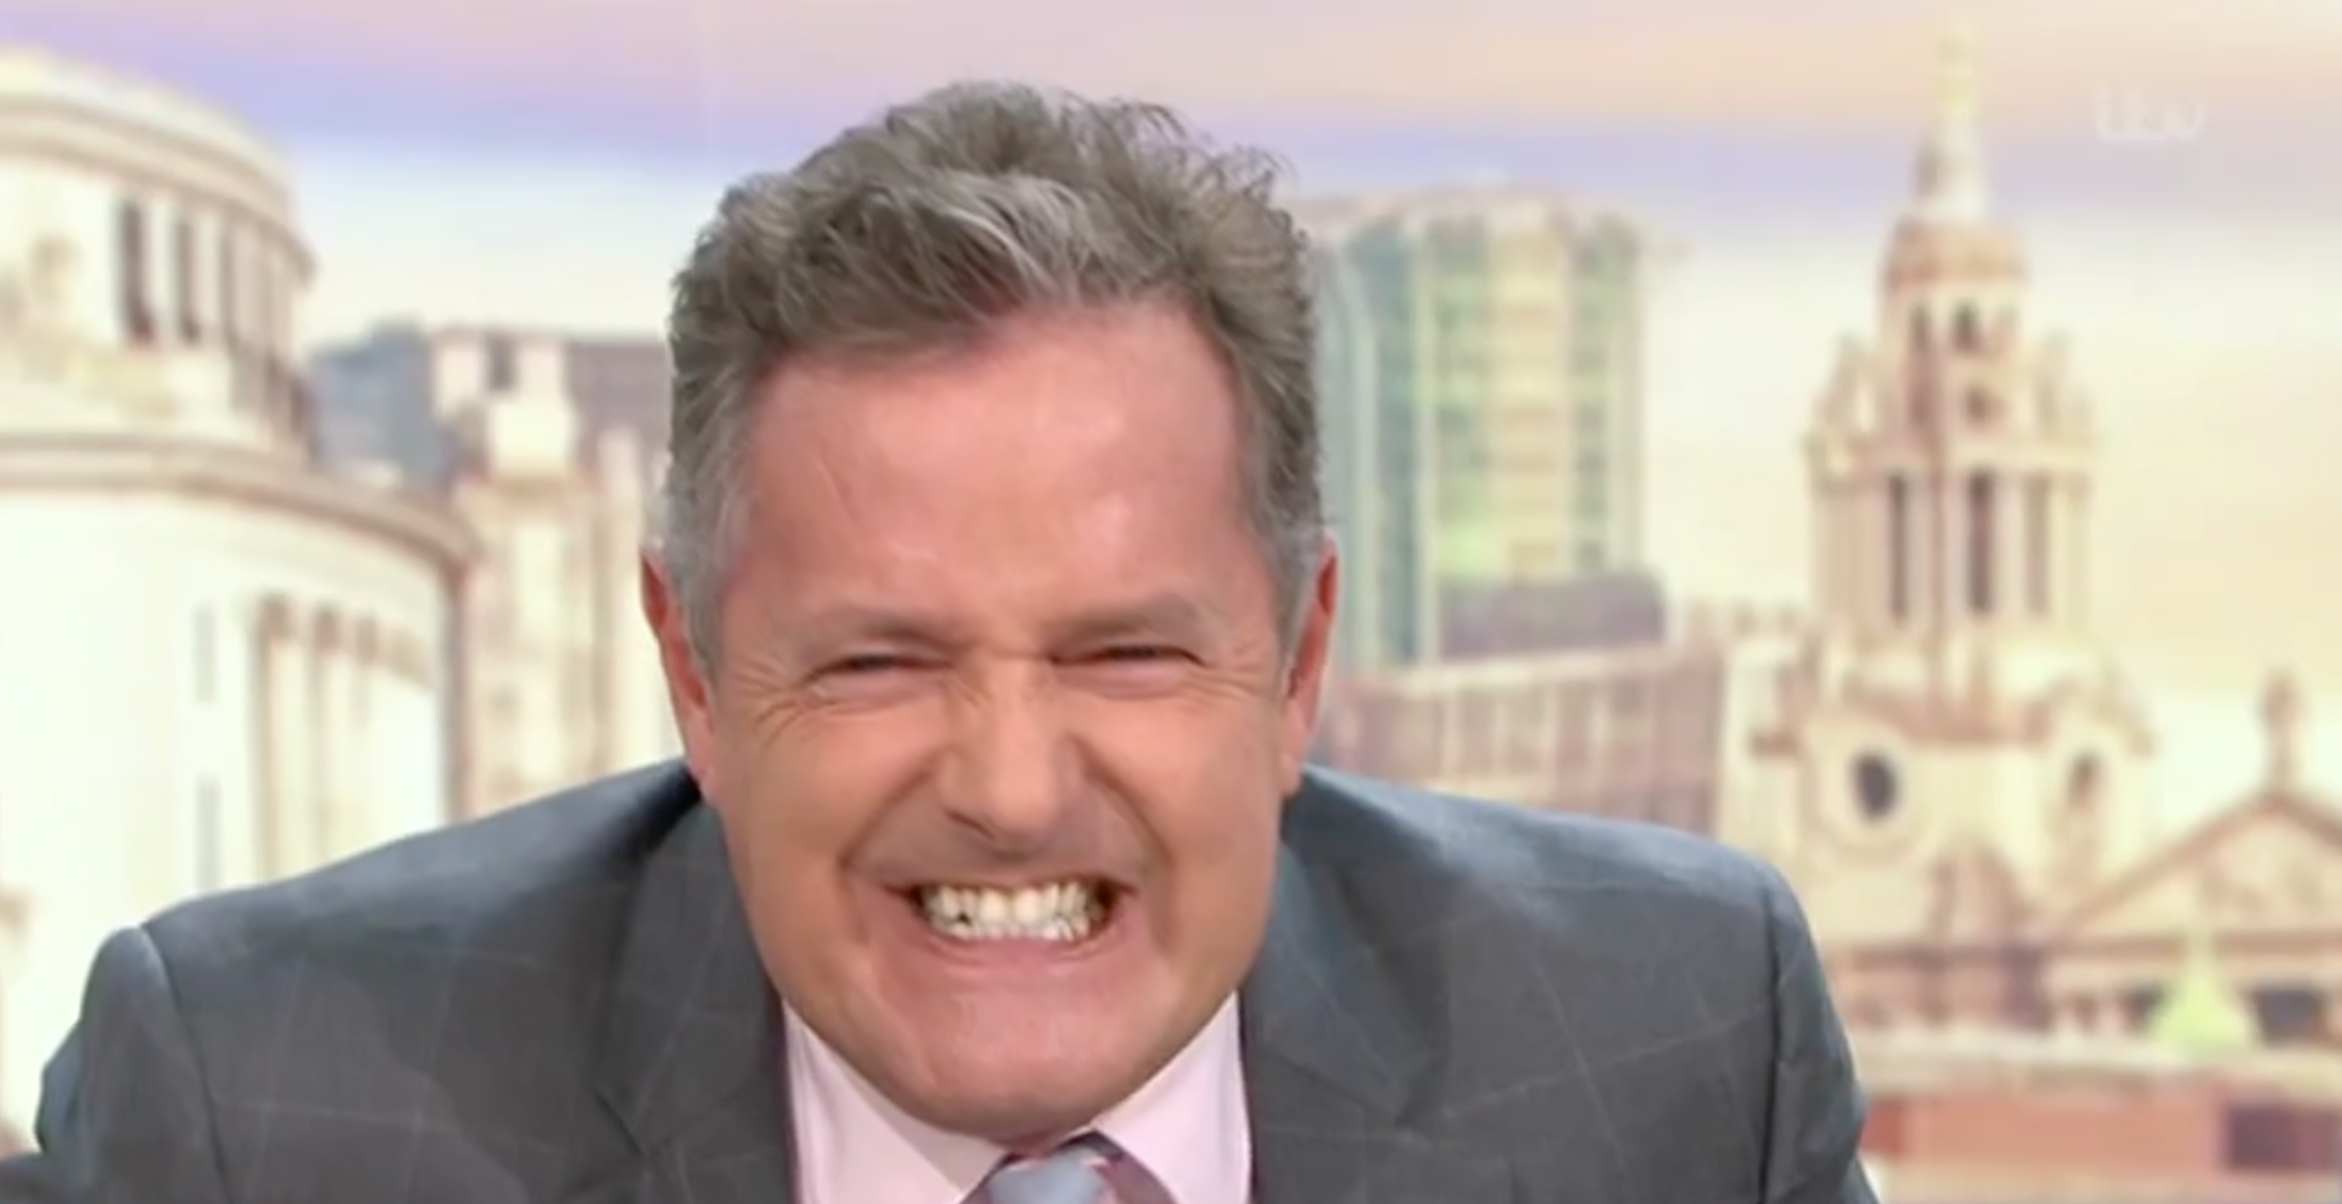 Piers Morgan angry that pubs can reopen at 6am